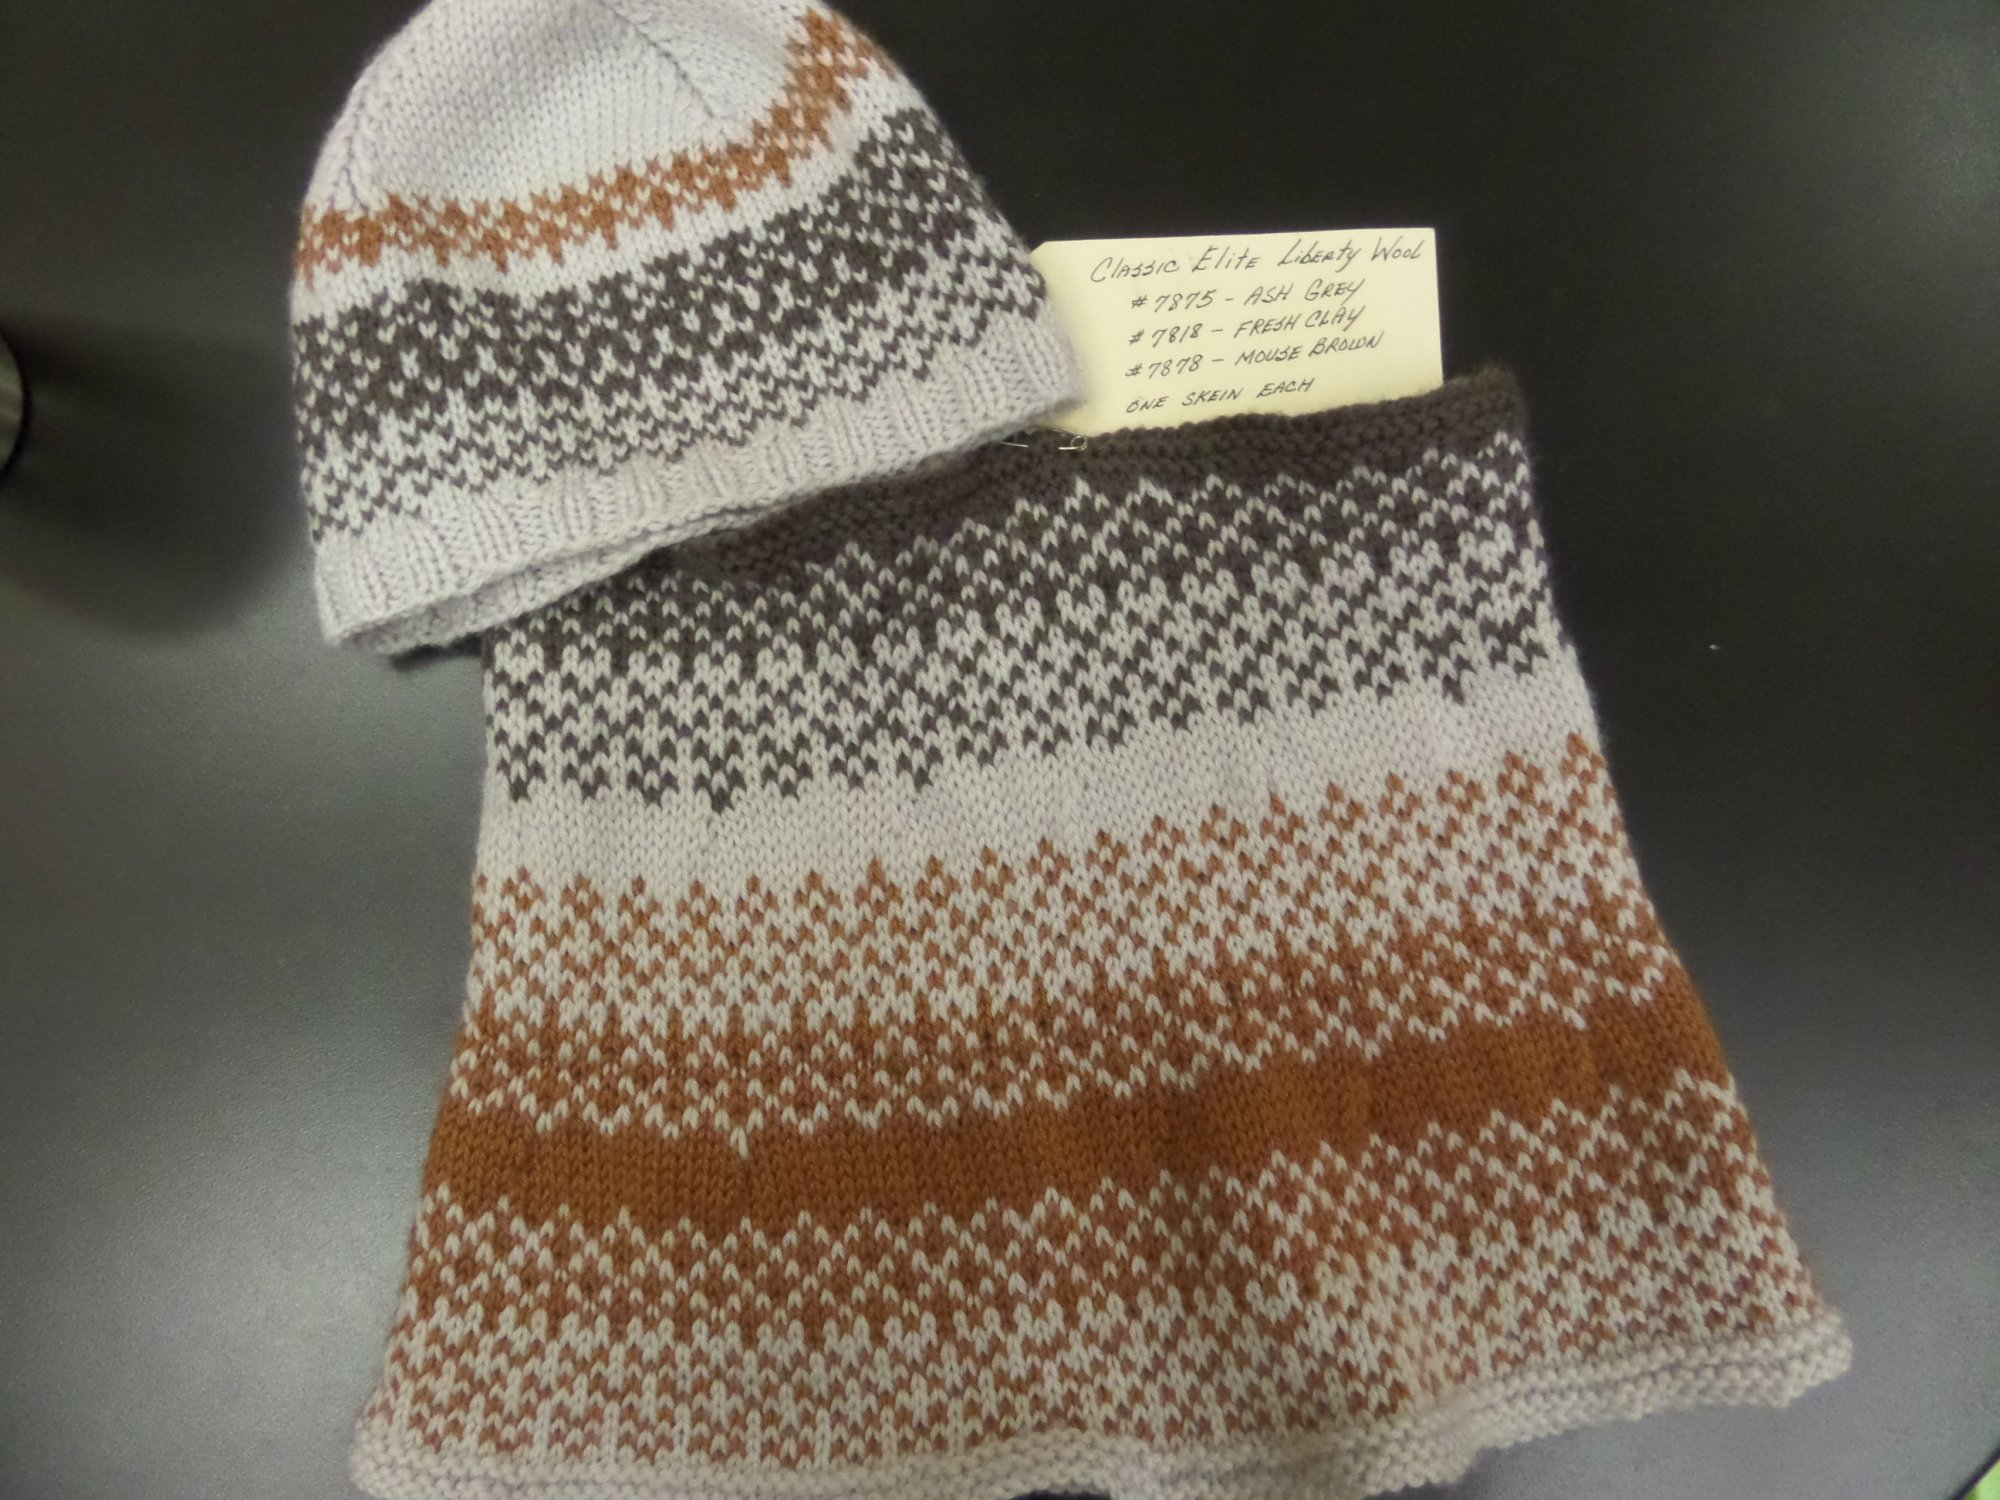 Sandpiper hat and cowl set model in Liberty Wool yarn from Classic Elite